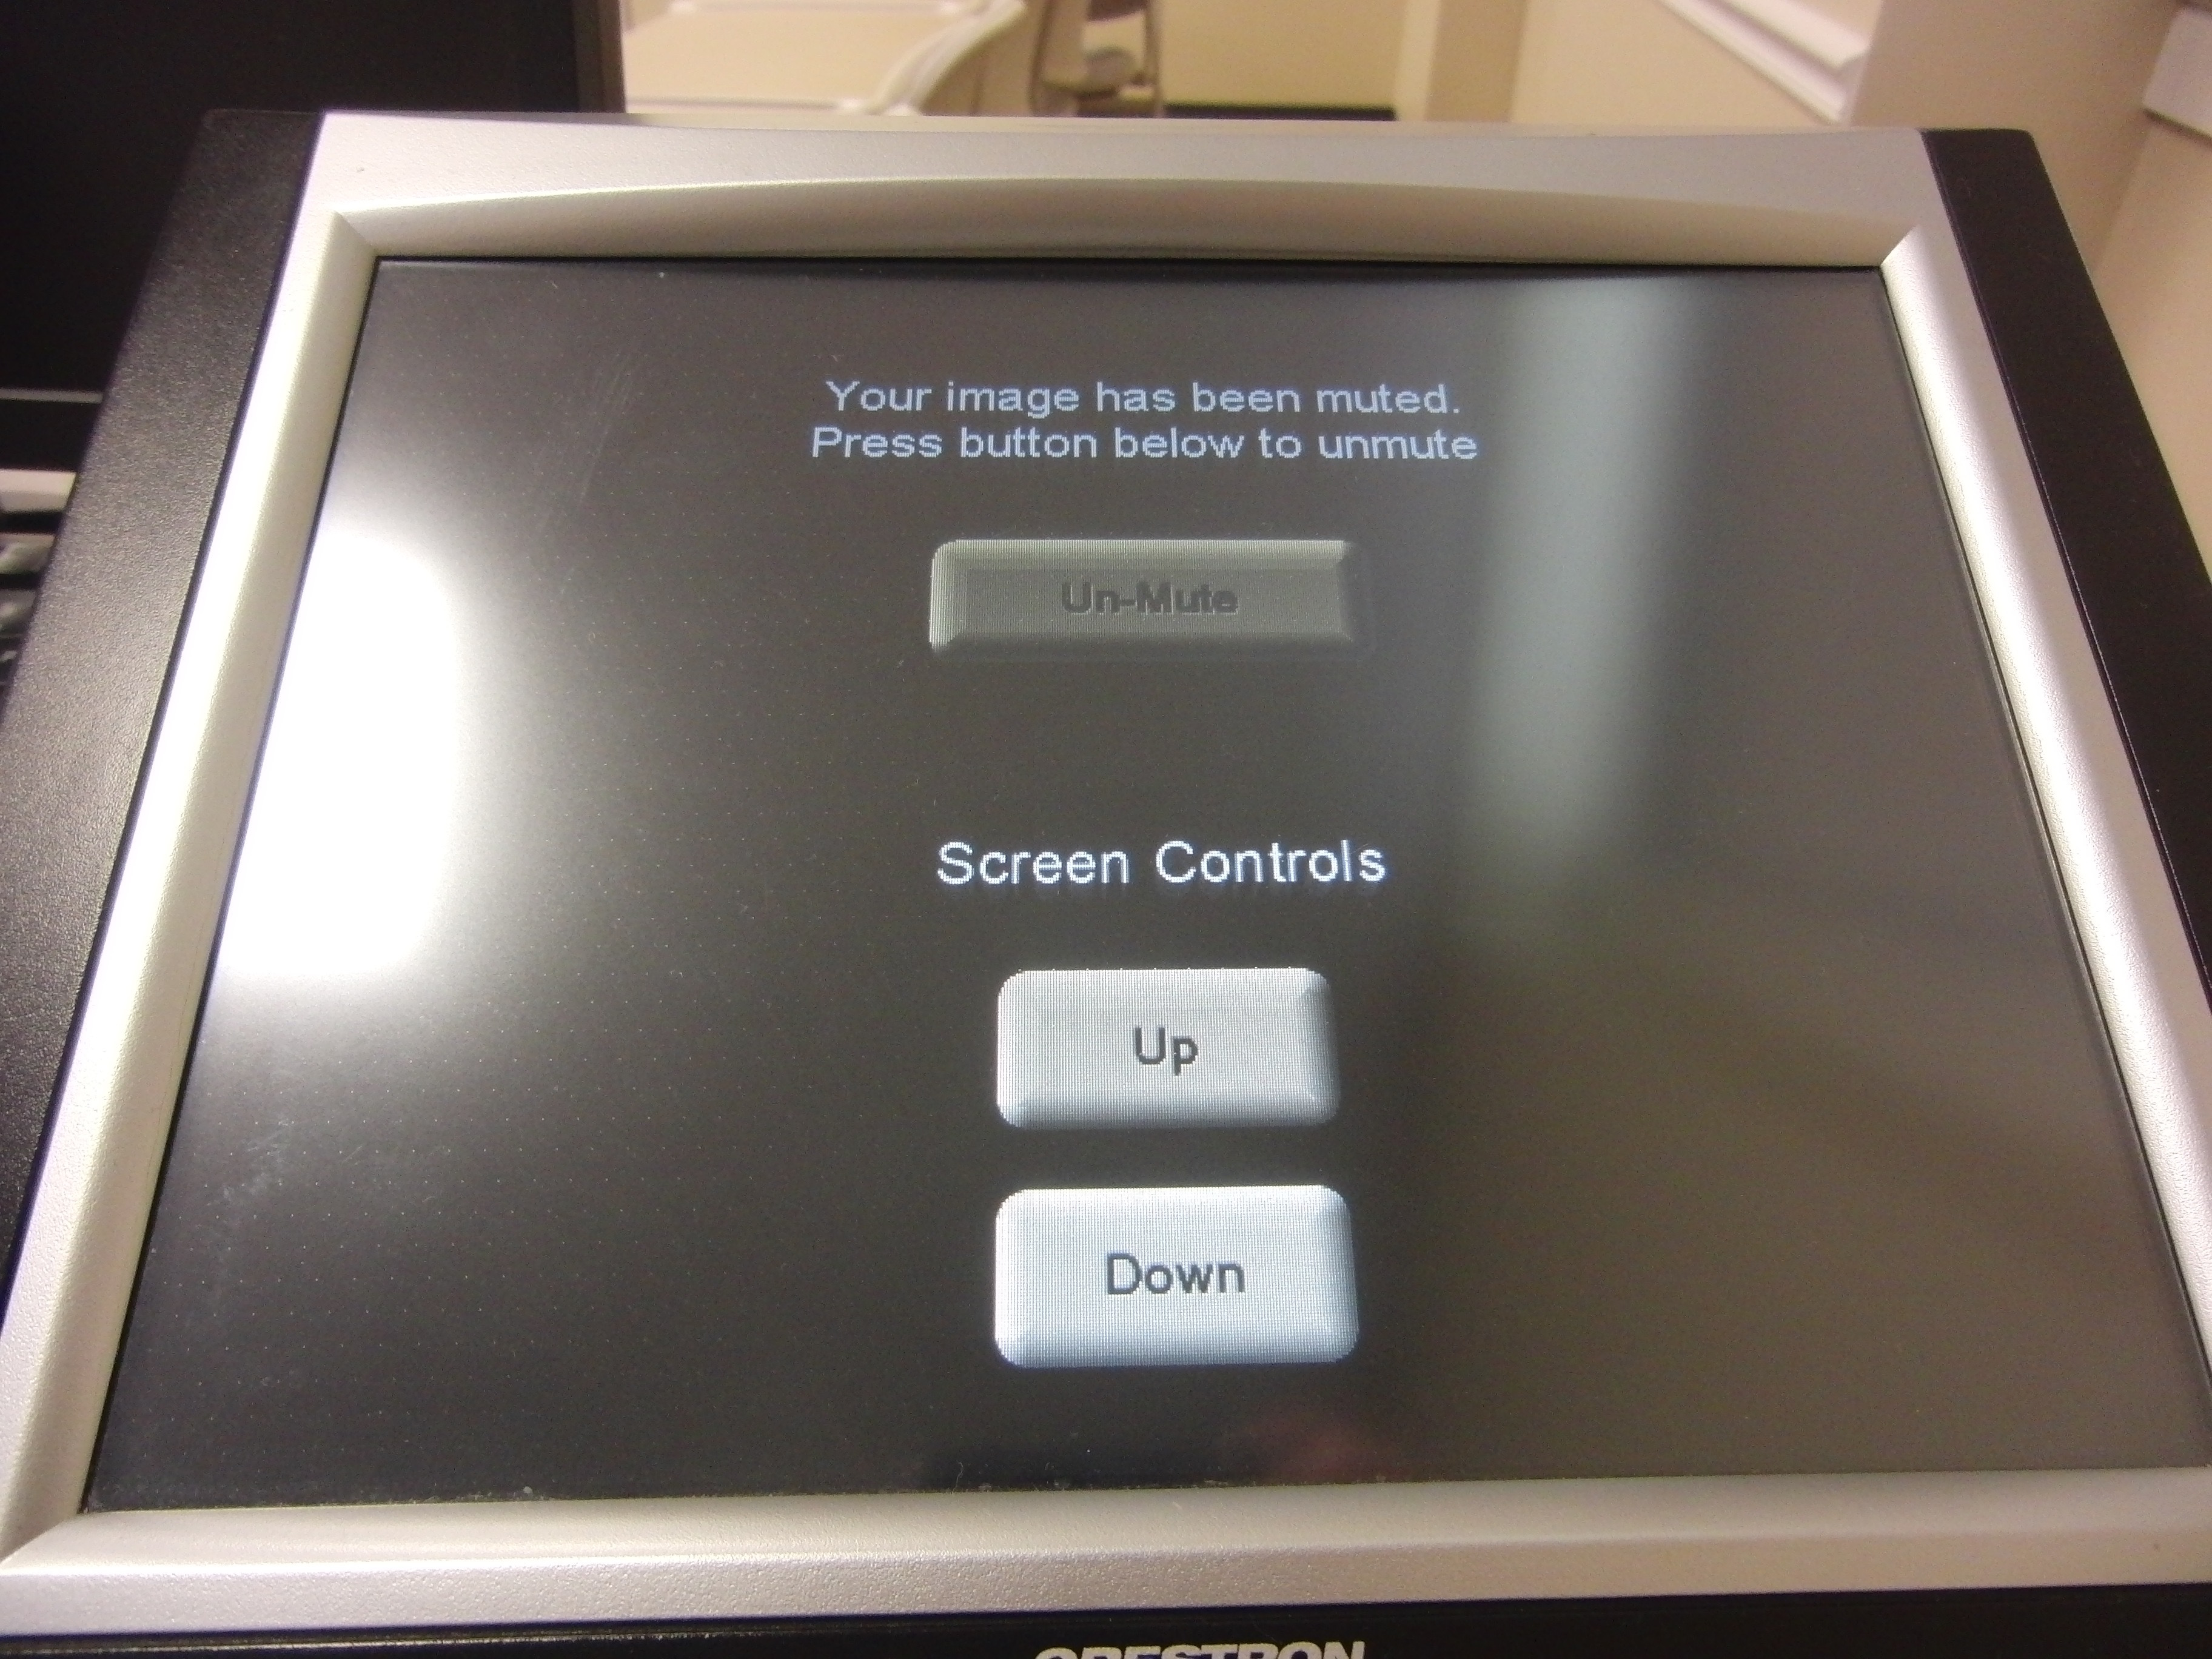 Photo of crestron control touch panel with option to un-mute the screen or move the screen up or down